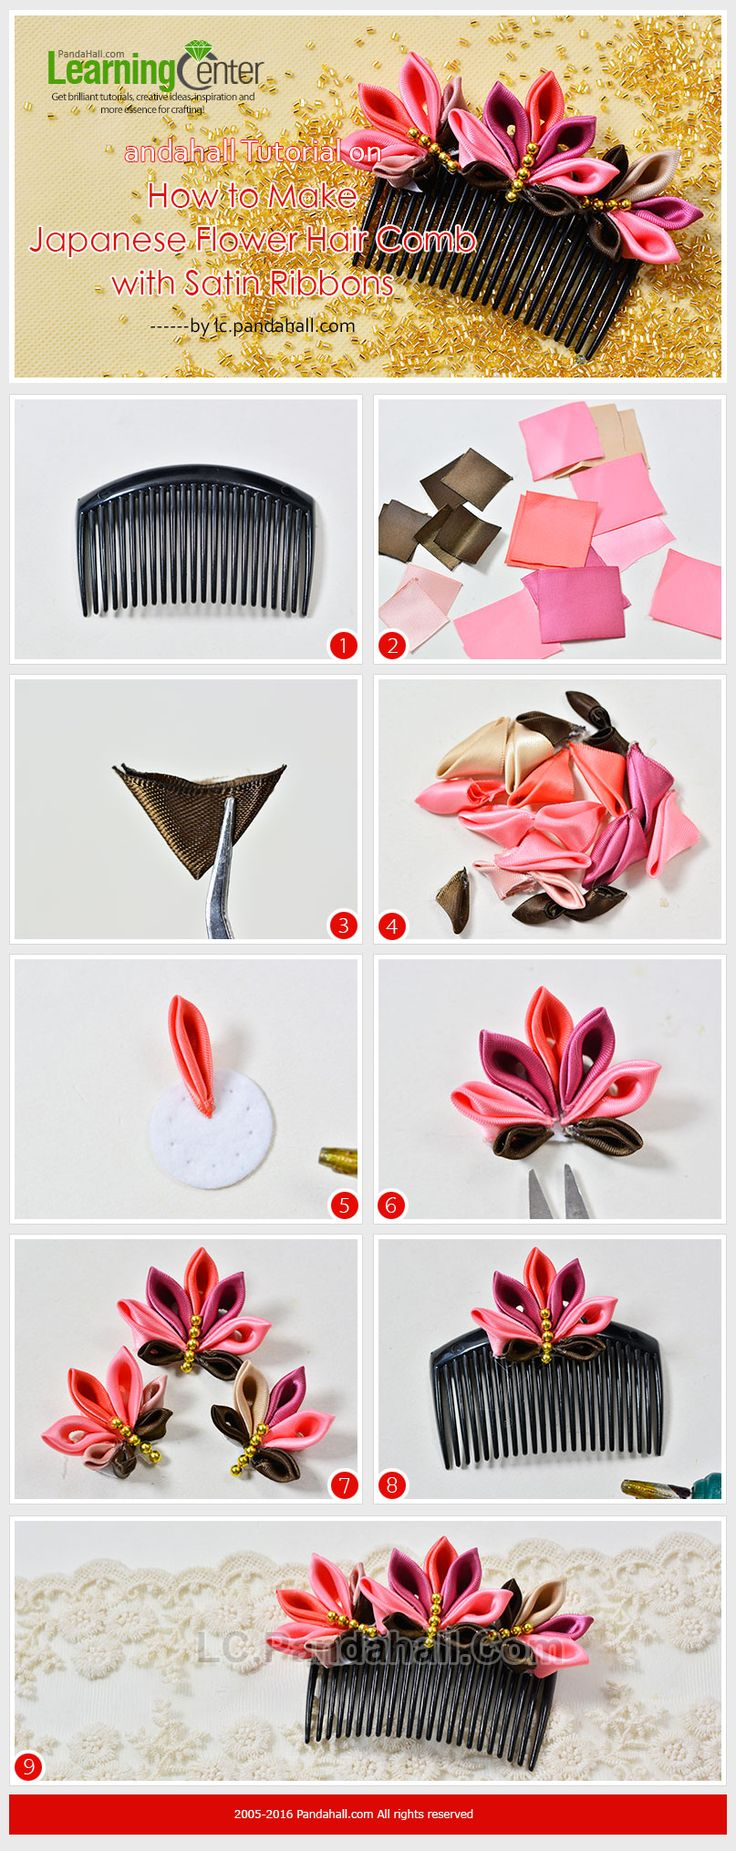 Tutorial on How to Make Japanese Flower Hair Comb with Satin Ribbons from LC.Pandahall.com